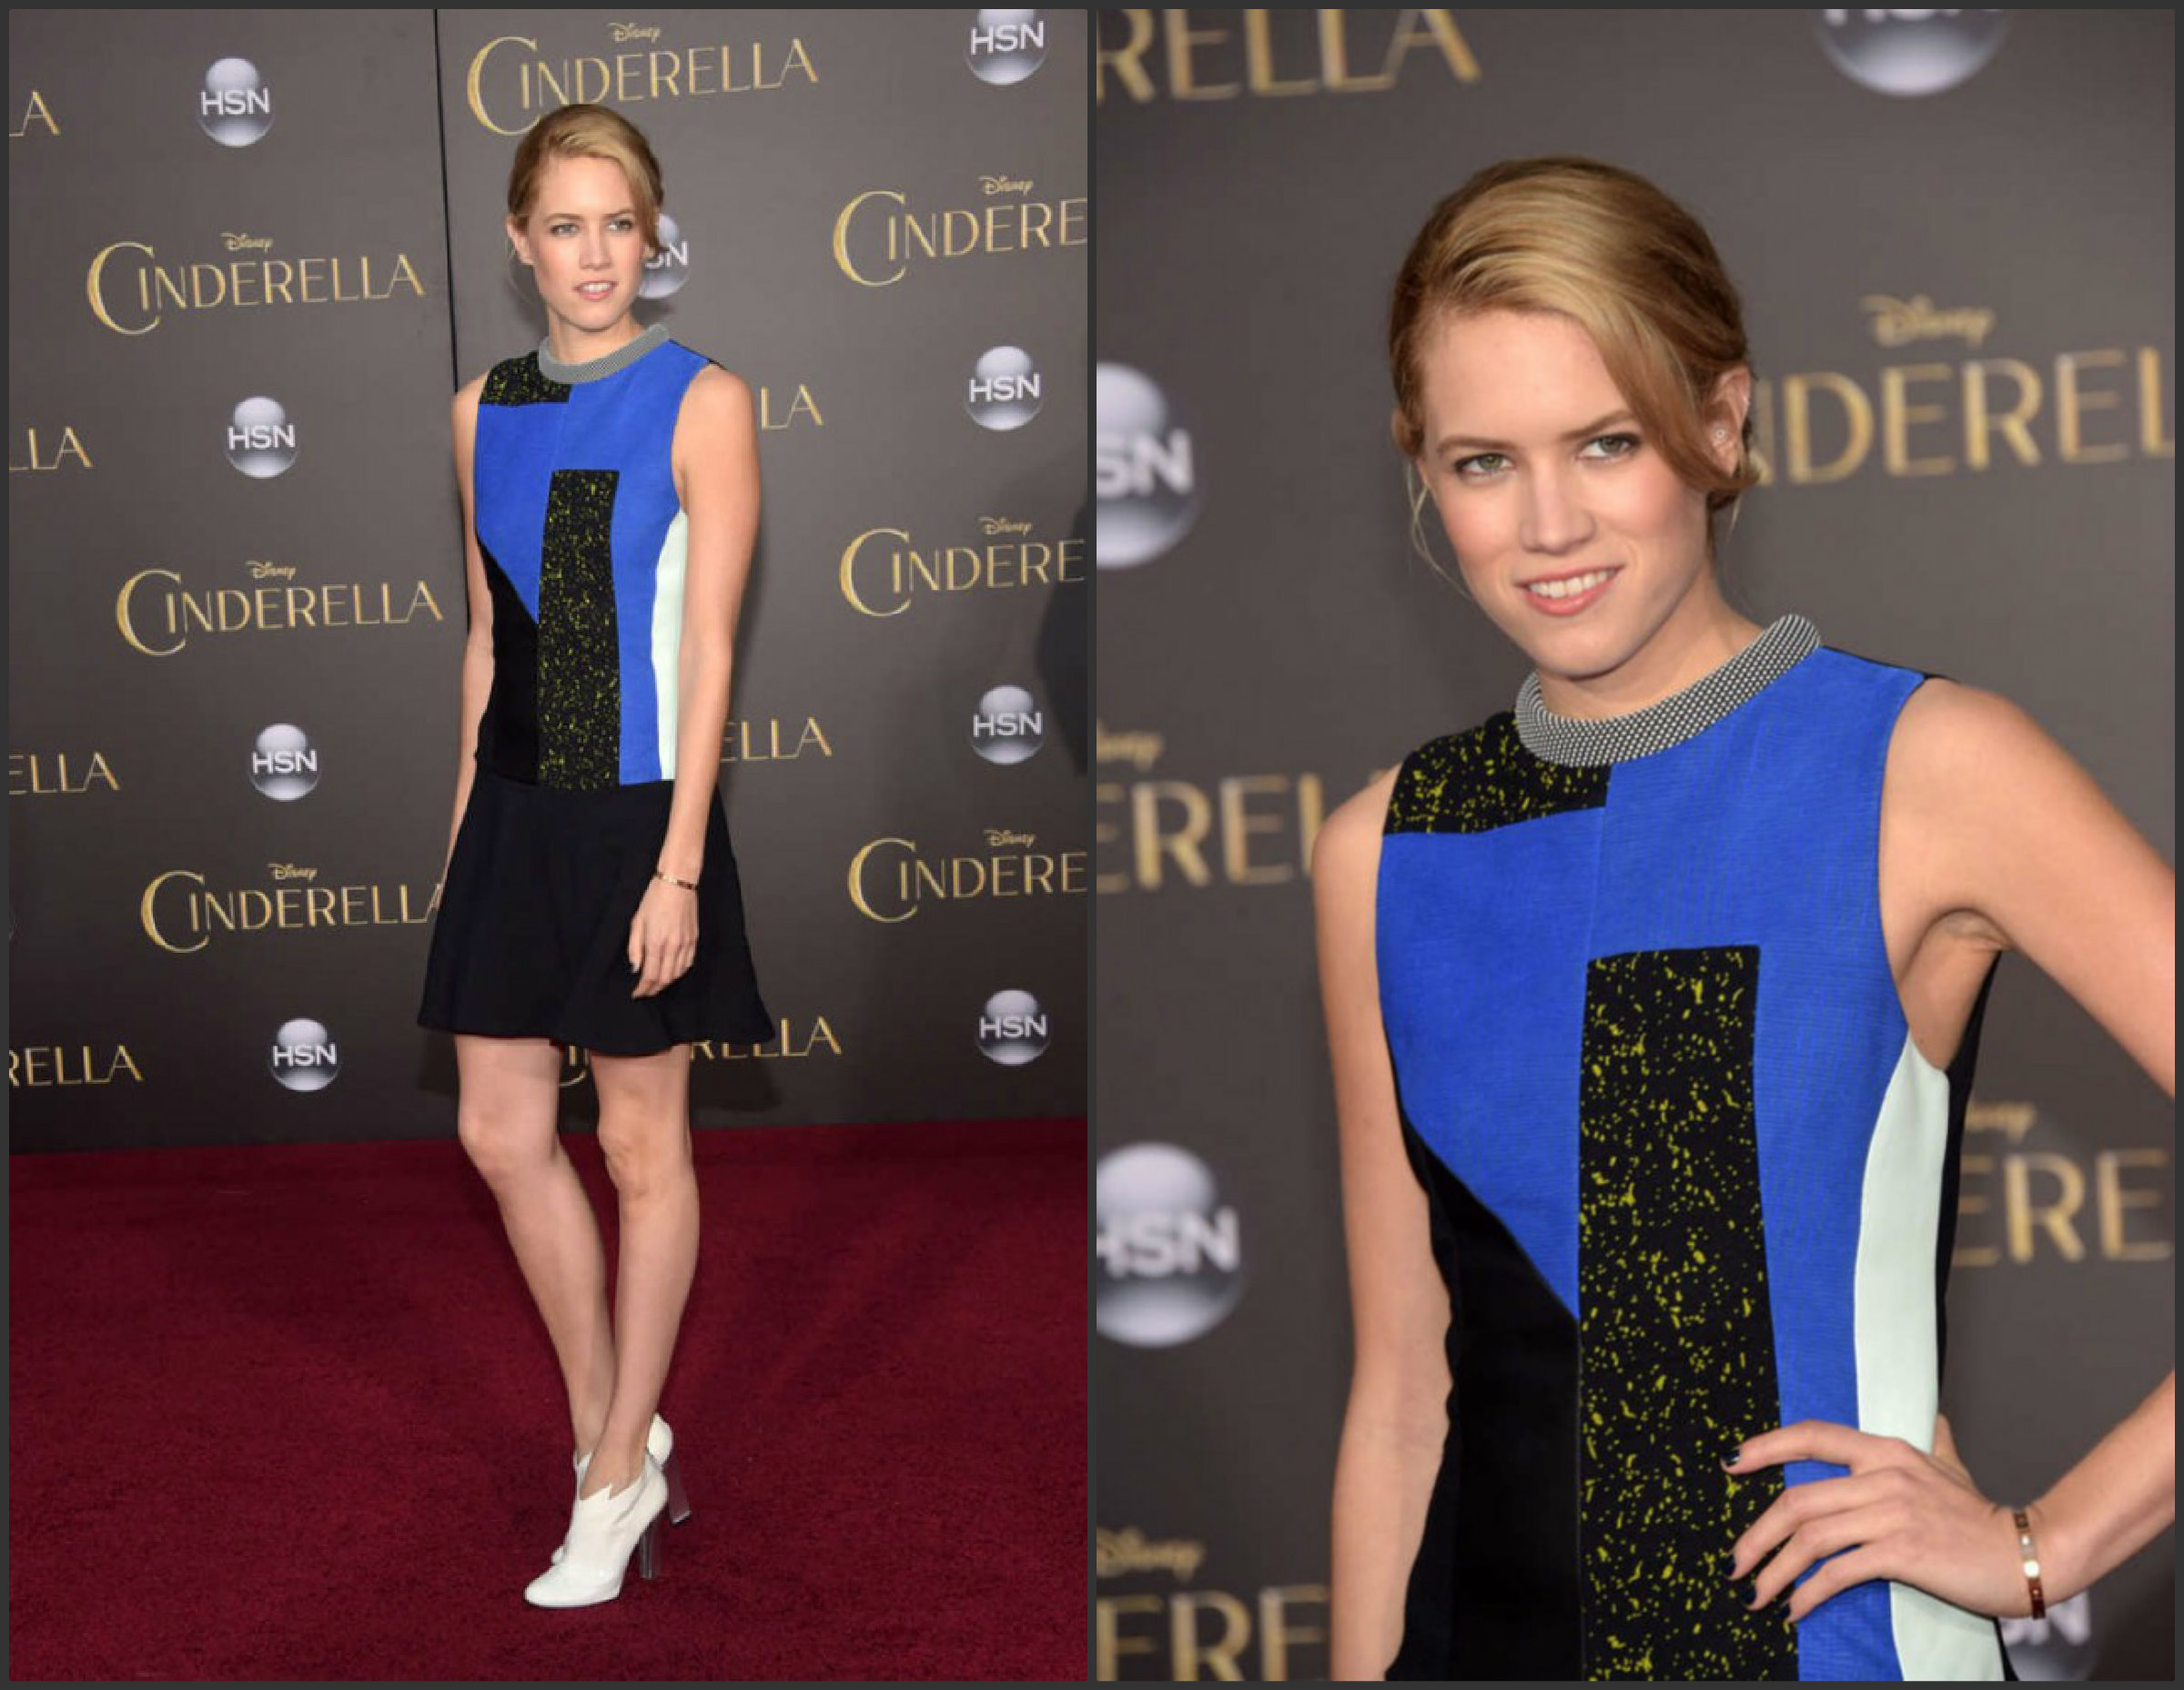 Cody-Horn-in-a-Proenza-Schouler-at-the-Cinderella-Premiere-in Hollywood